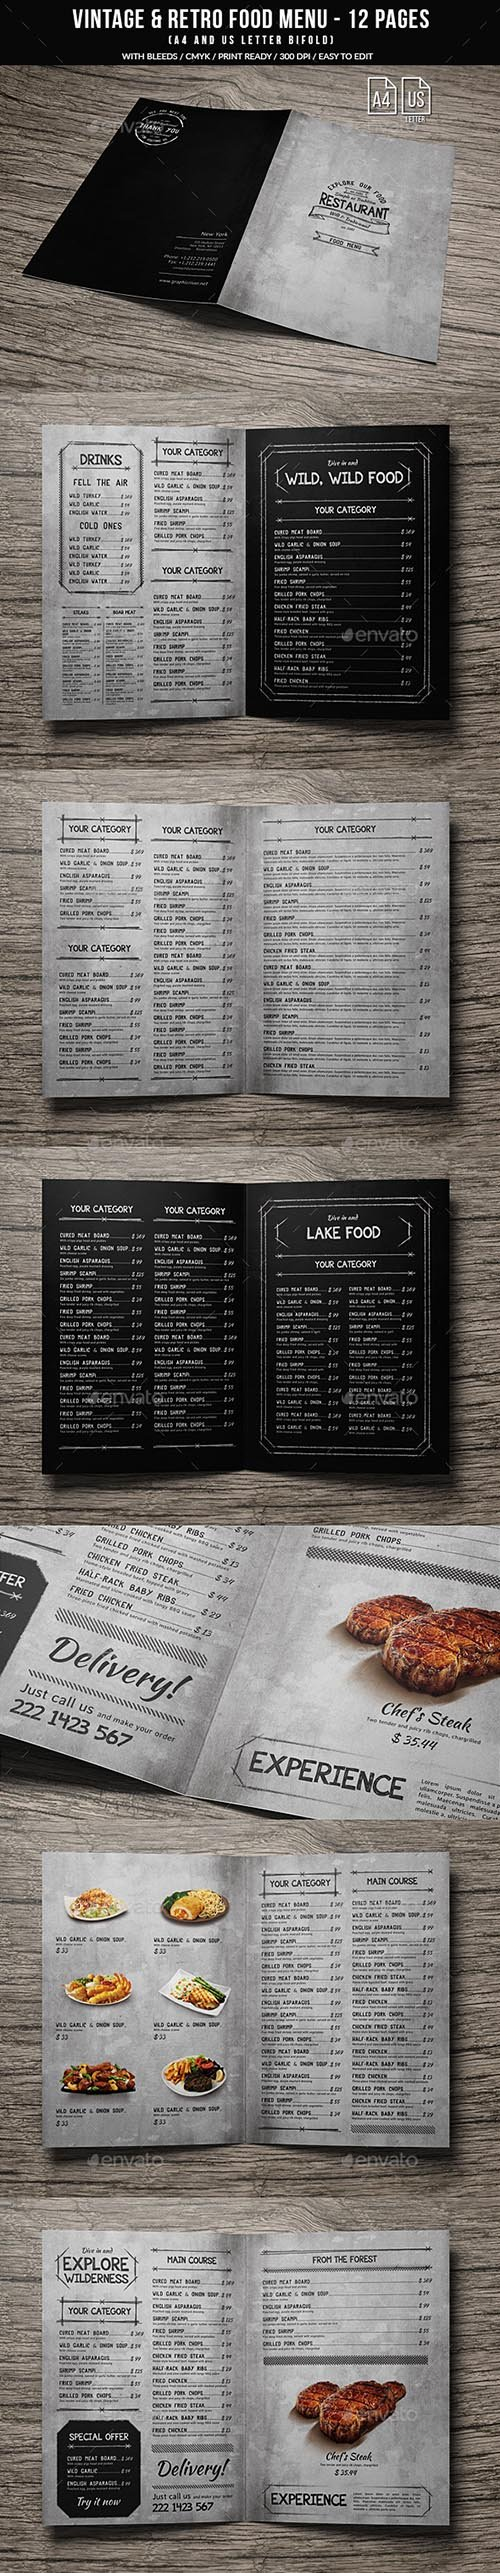 GR - Vintage And Retro Bifold Menu A4 & US Letter - 12 pgs